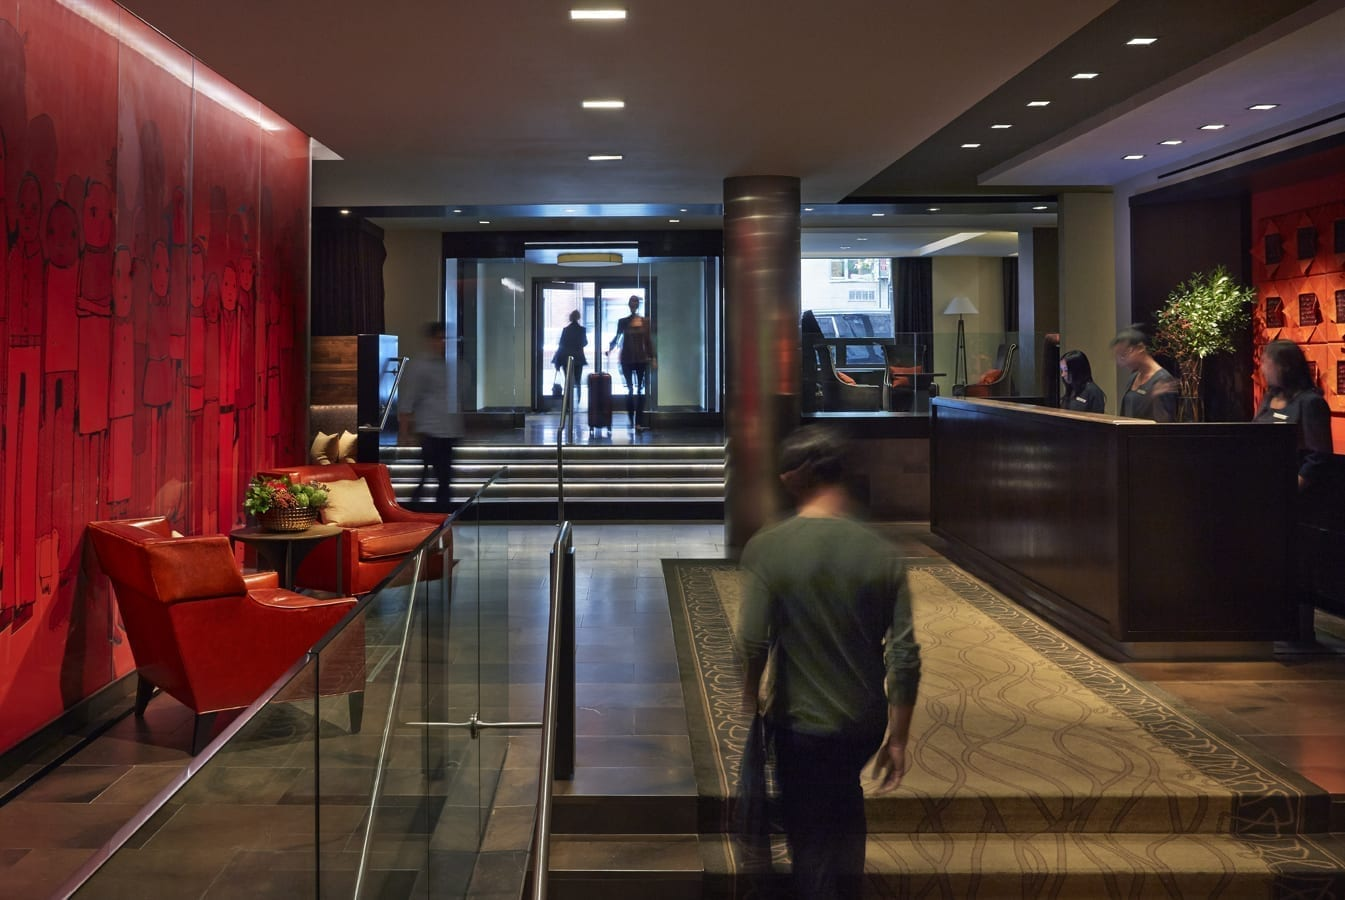 A man walks up the stairs leading to Shelburne Hotel and Suites' front desk. Across at the left are two red chairs against a red wall dressed with texture.